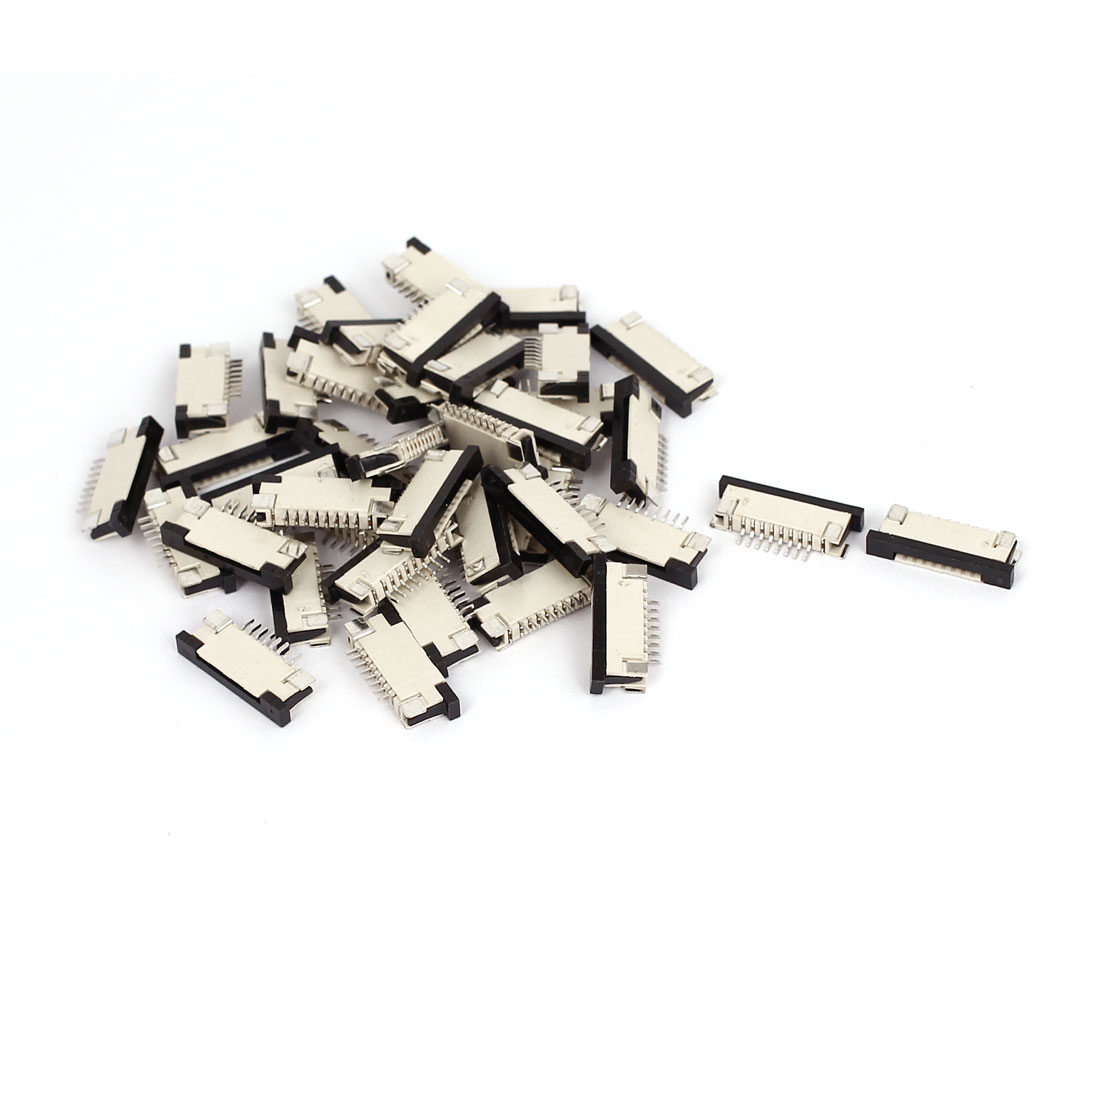 1.0mm Spacing 8 Pin FFC FPC Flexible Flat Cable Cord Upper Connector Socket 39pcs